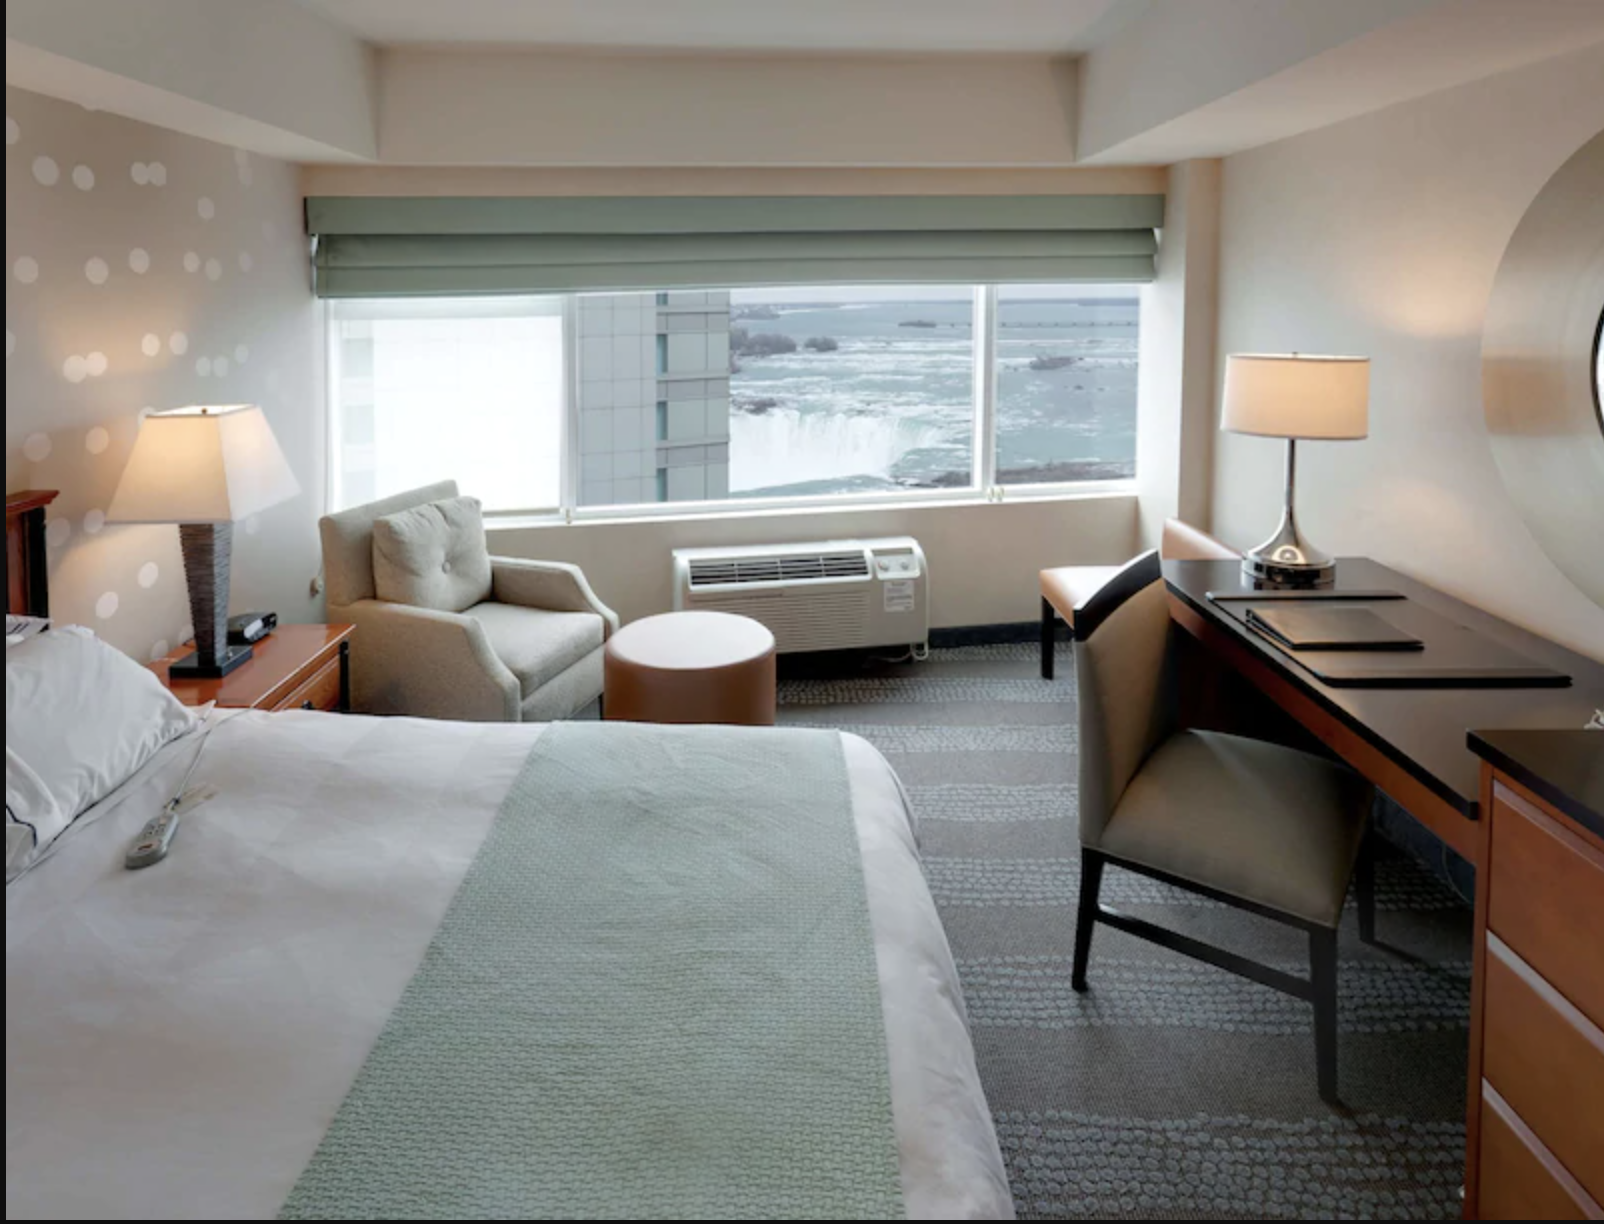 niagara falls hotels with a view of the falls